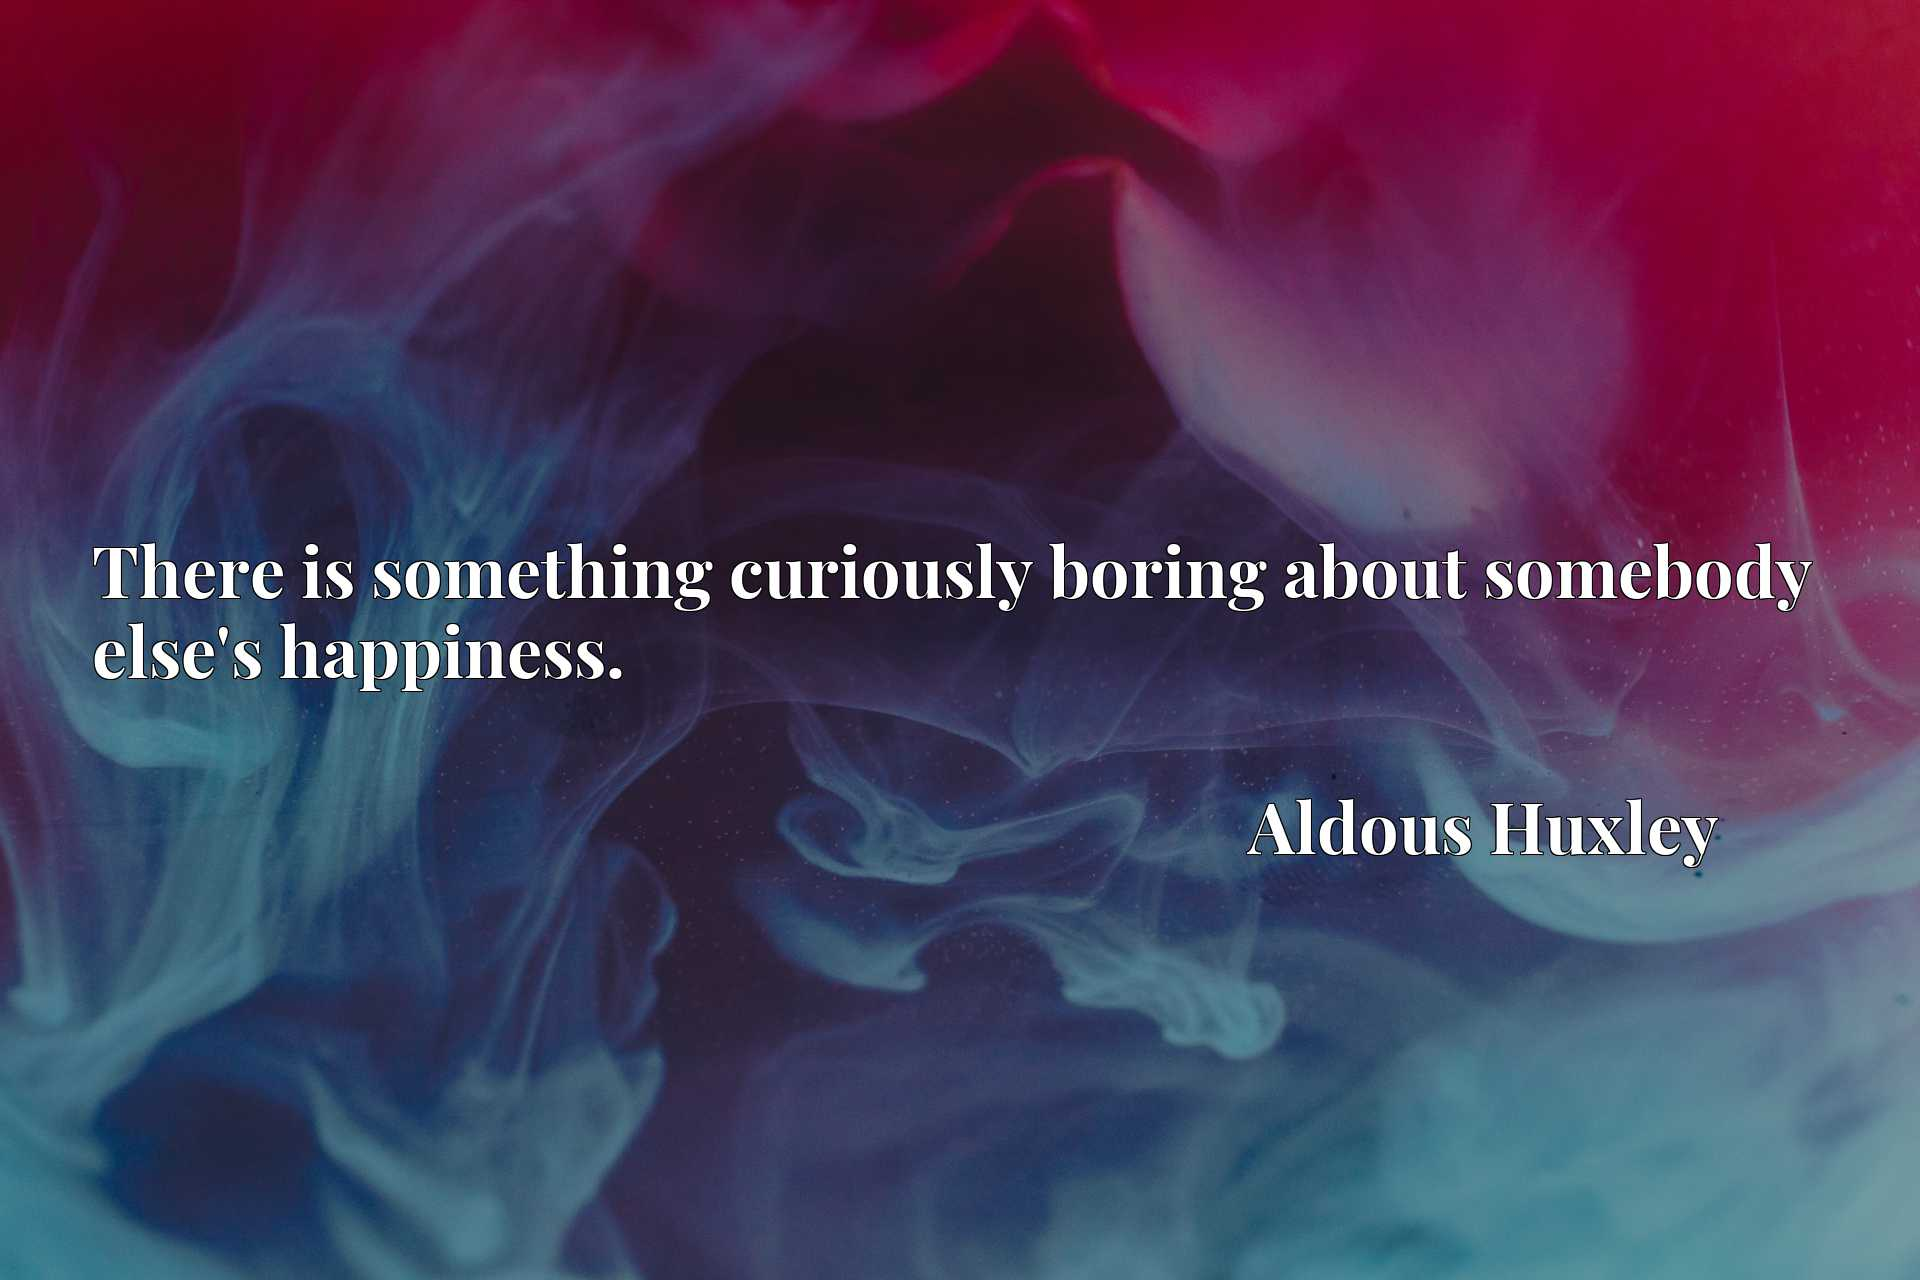 There is something curiously boring about somebody else's happiness.